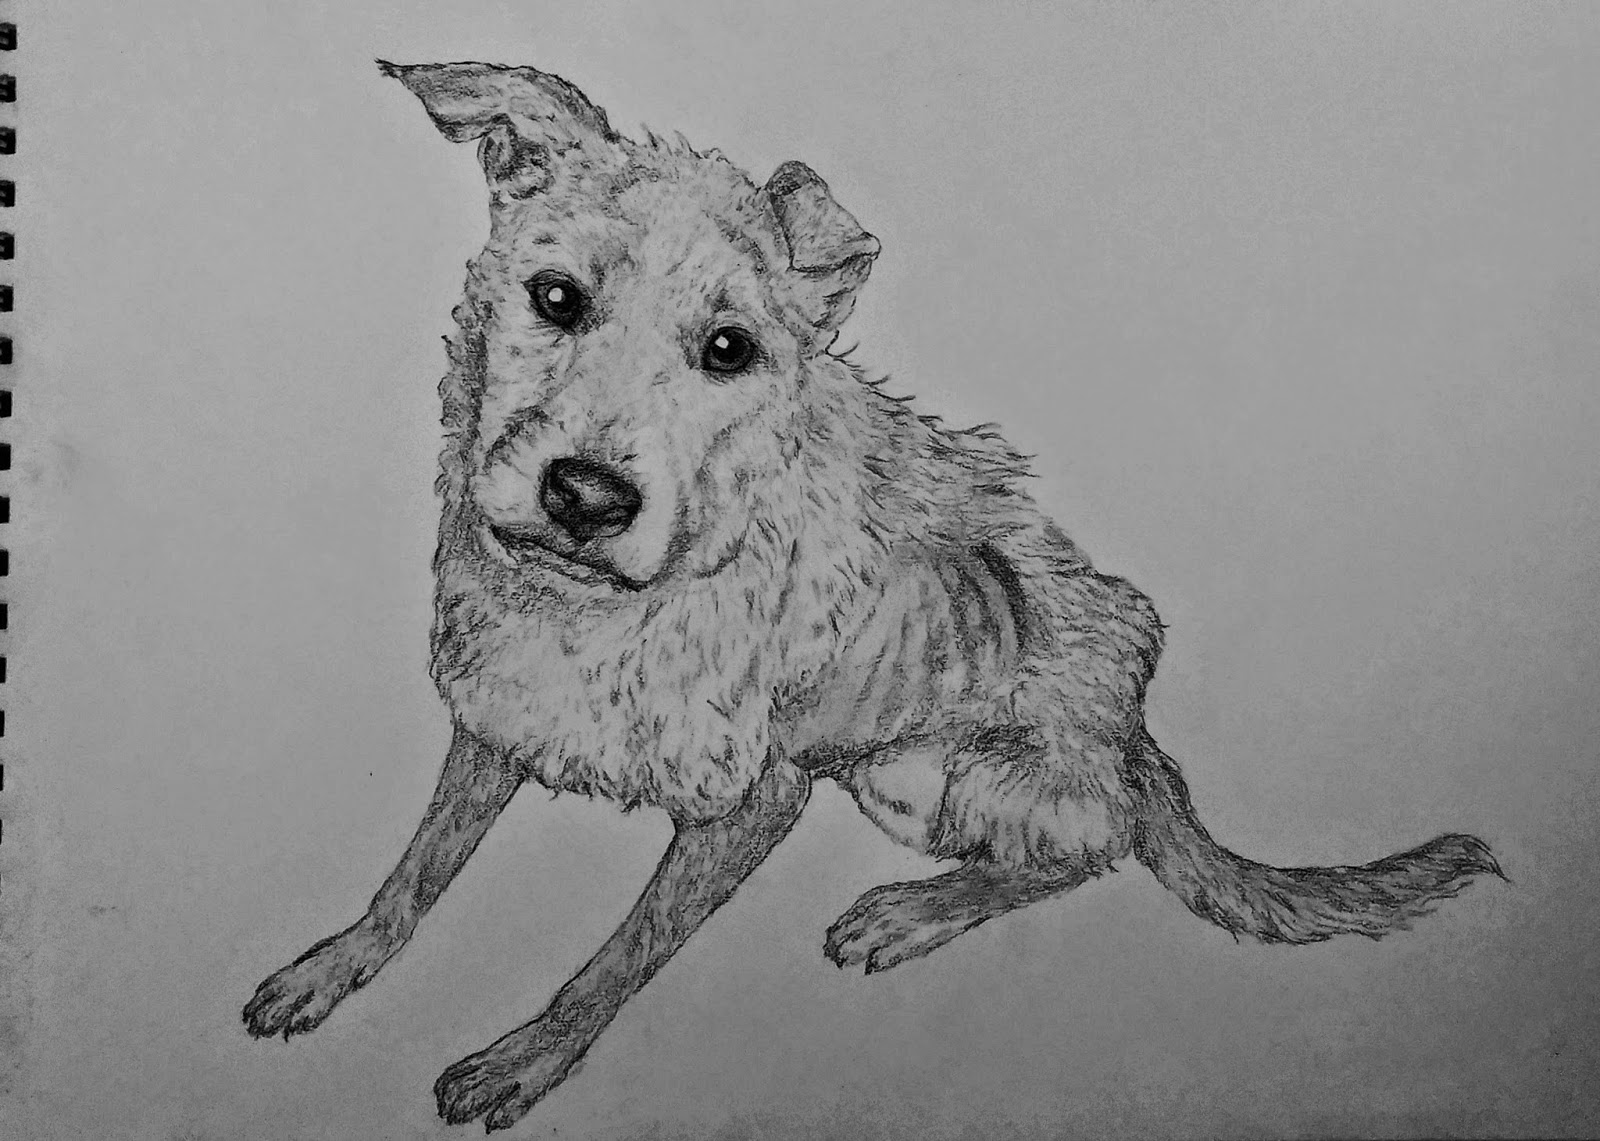 Masseu Learns To Sketch: Another sad dog drawing!